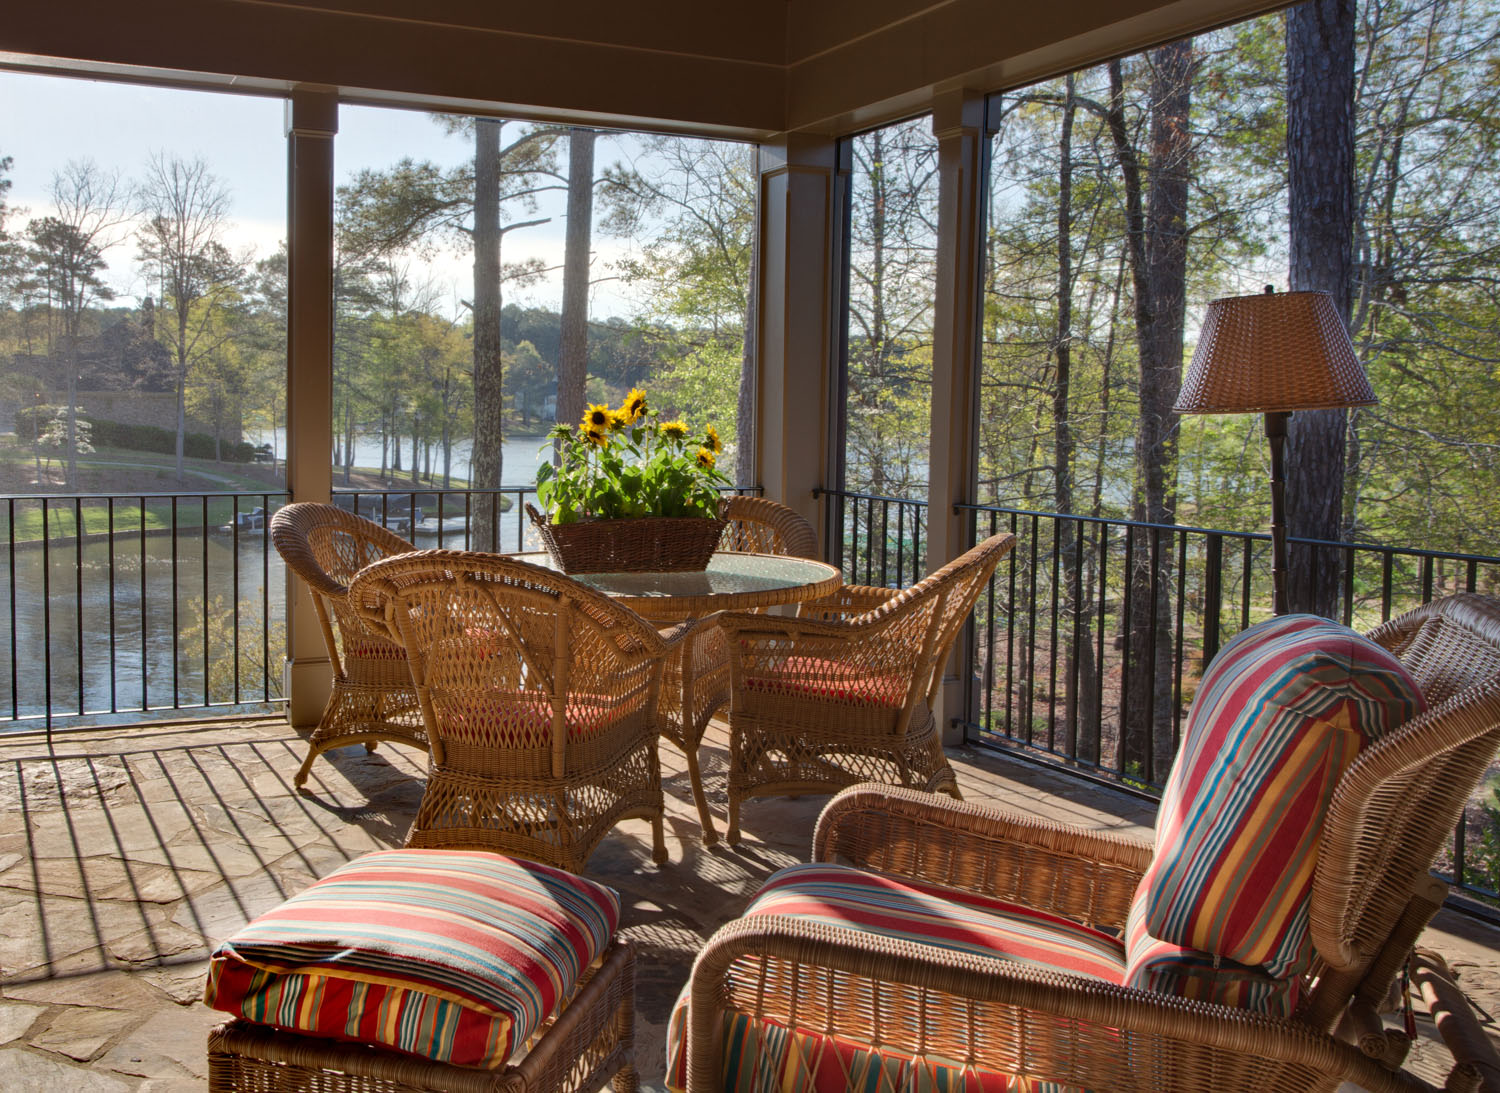 Boston interior designer Elizabeth Swartz Interiors helps to take the indoor living outdoors with the use of indoor lamps and other furnishings on this covered porch.